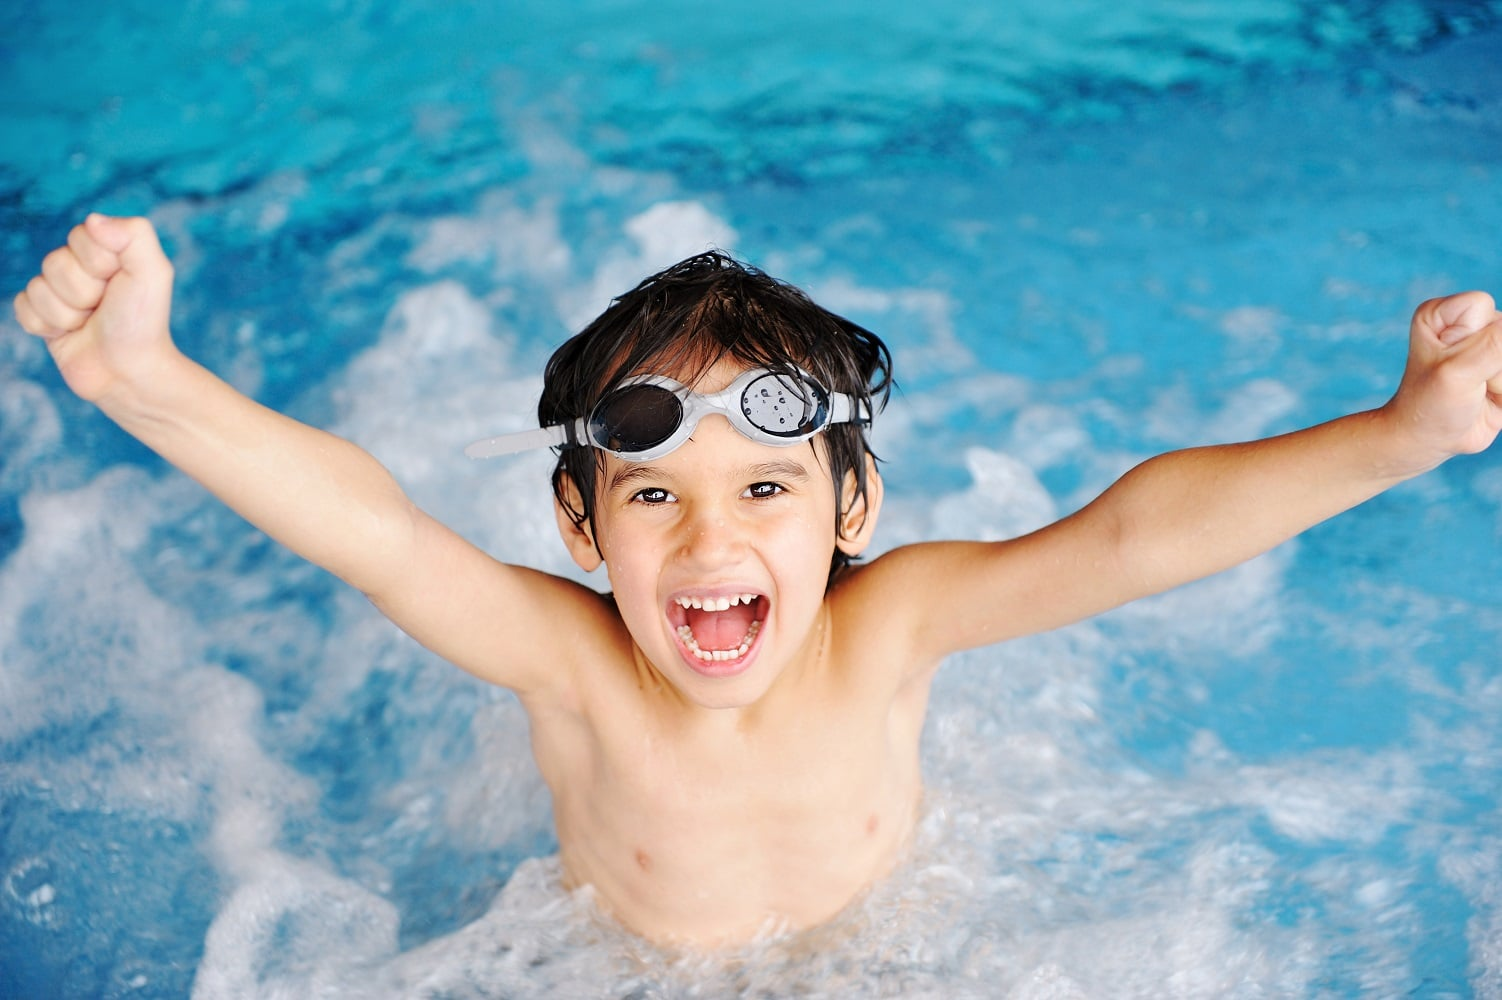 Water Safety with Others